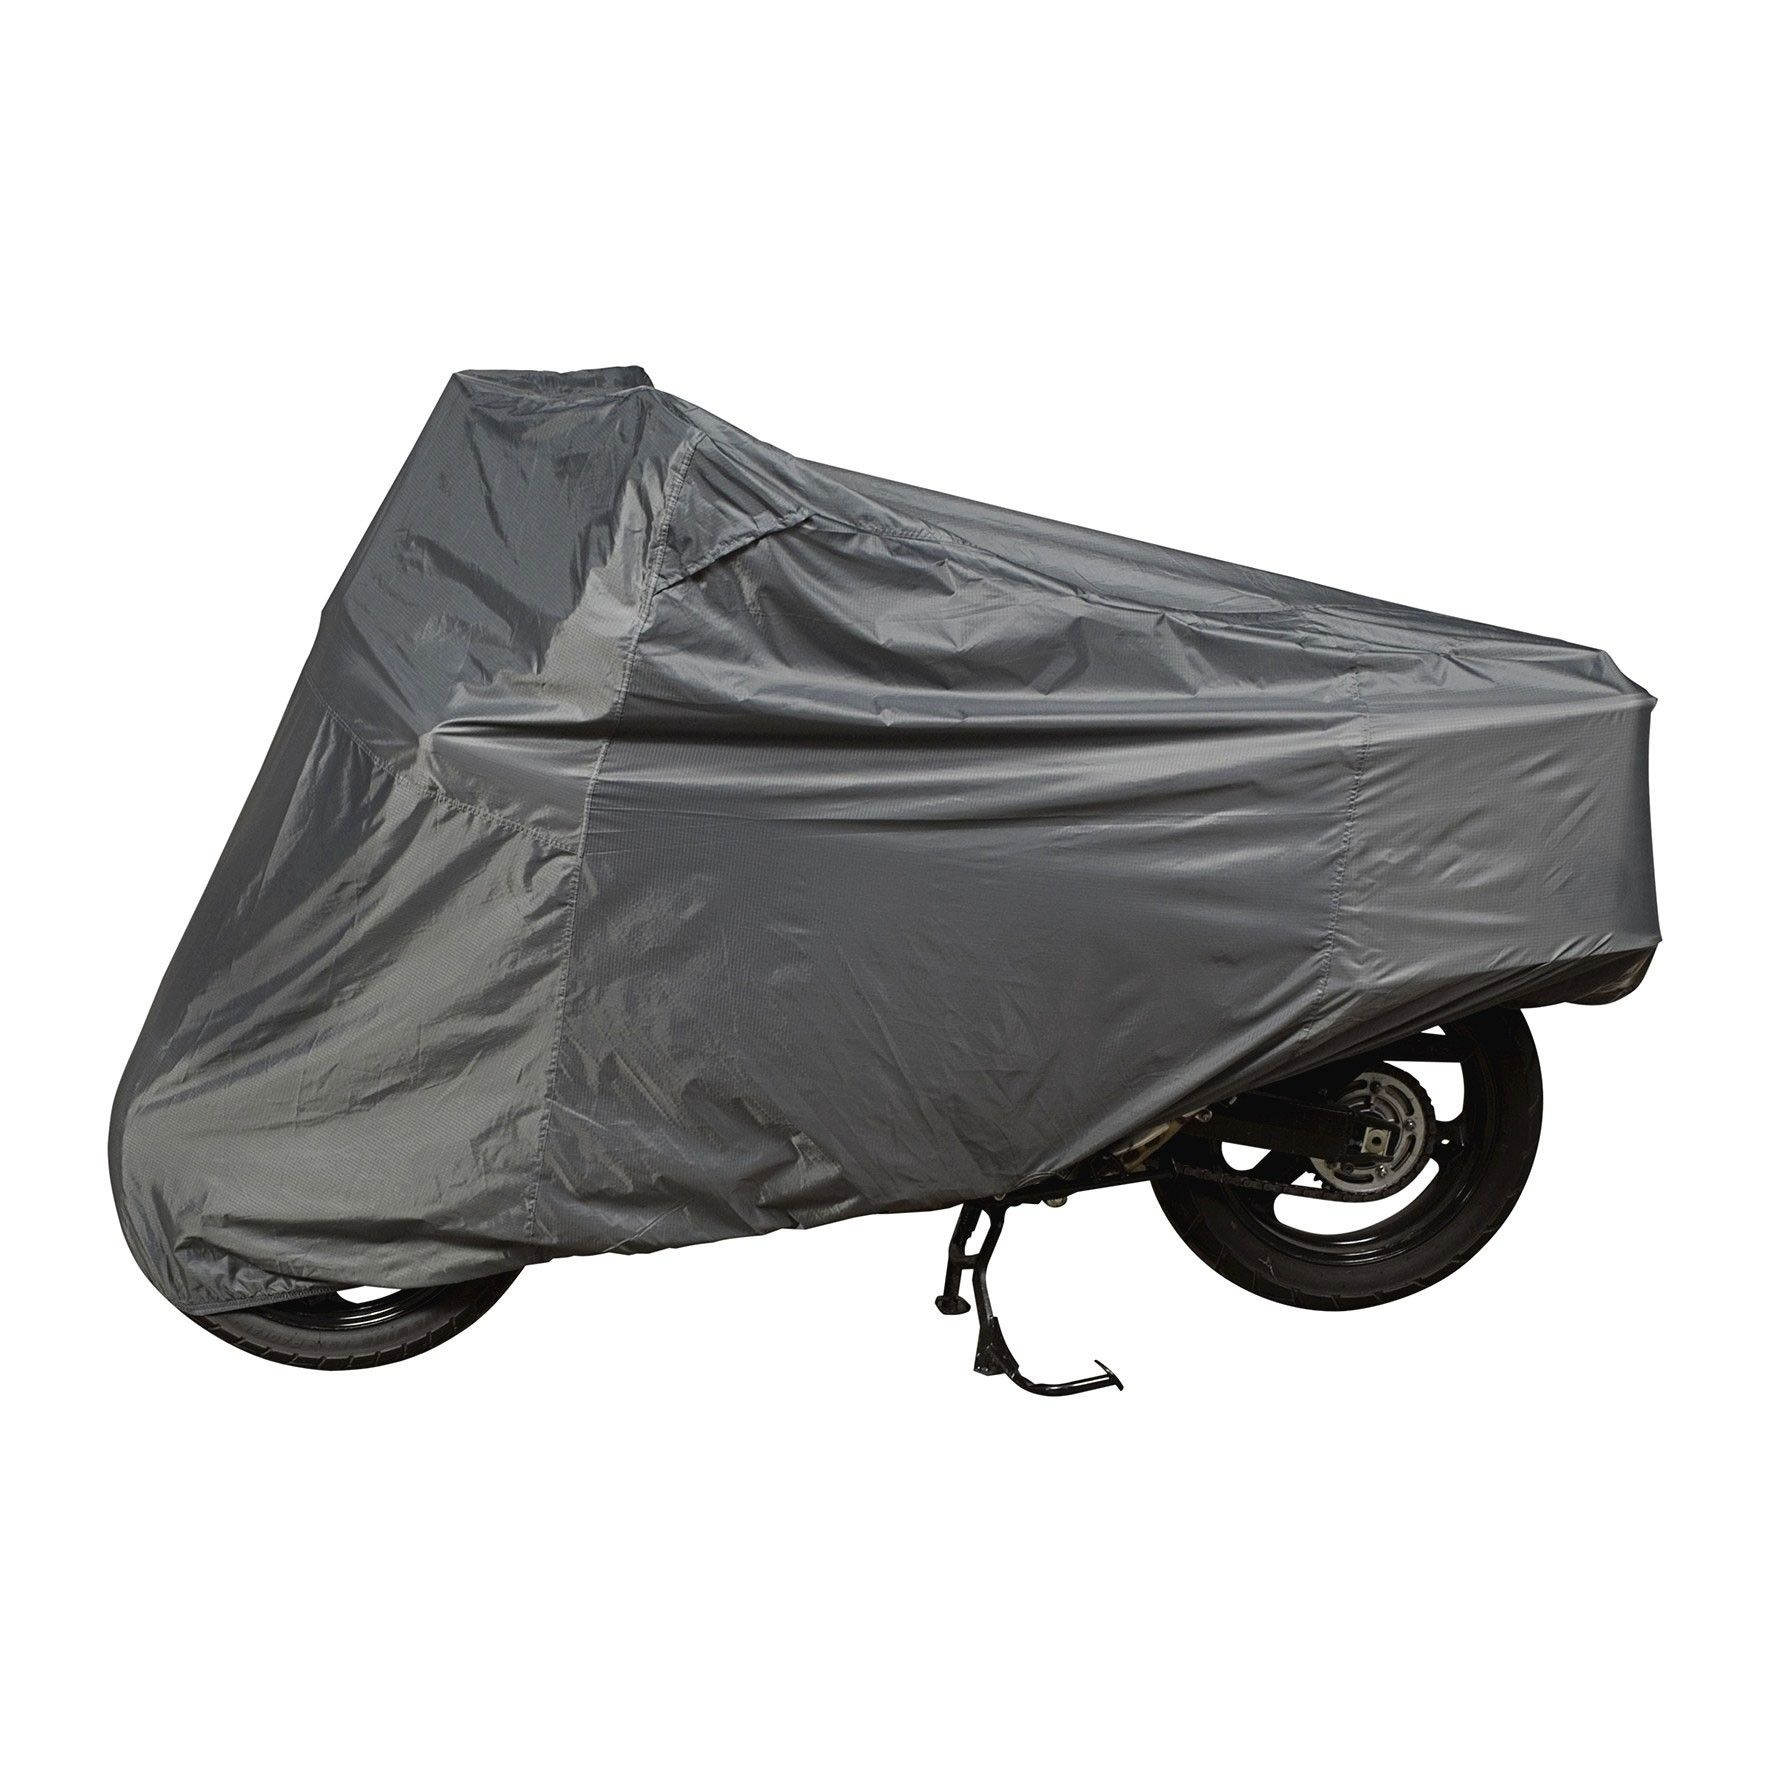 Dowco guardian ultralite plus motorcycle cover at is for